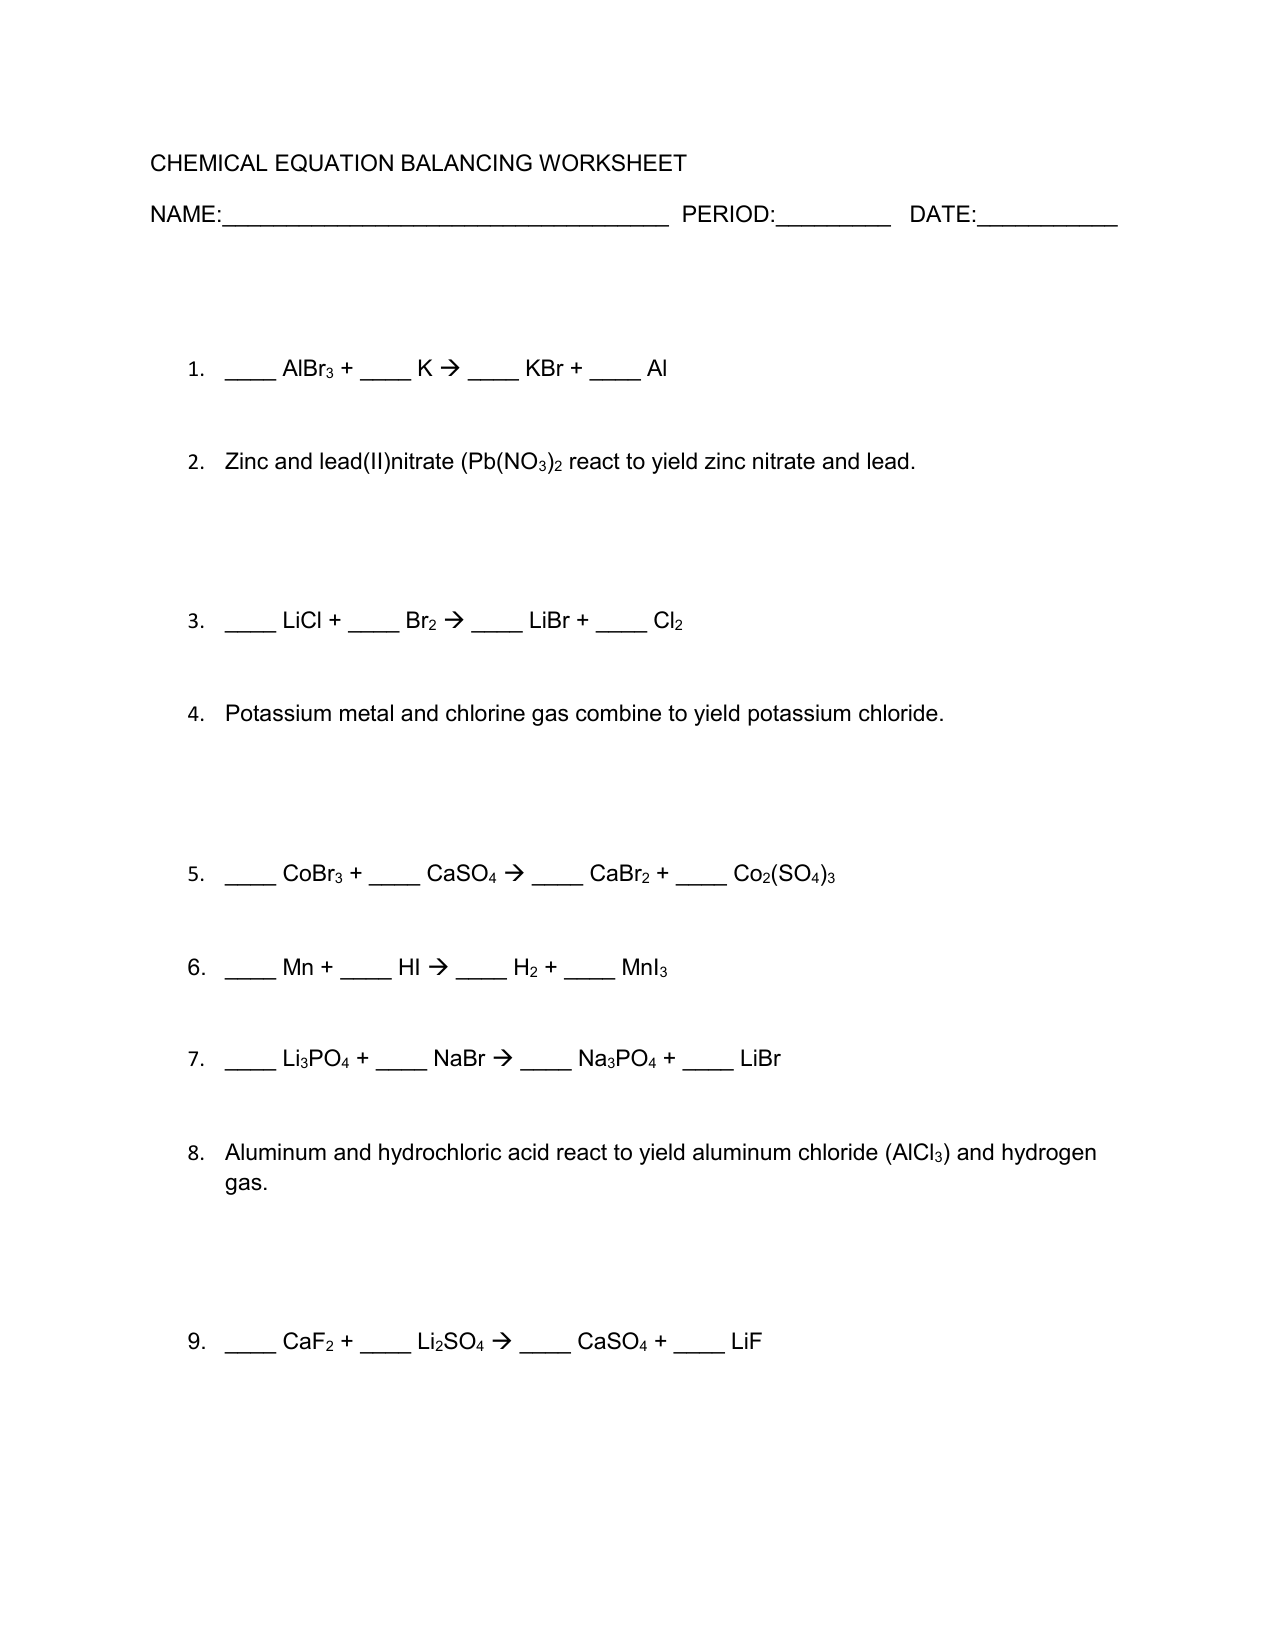 Chemical Equation Balancing